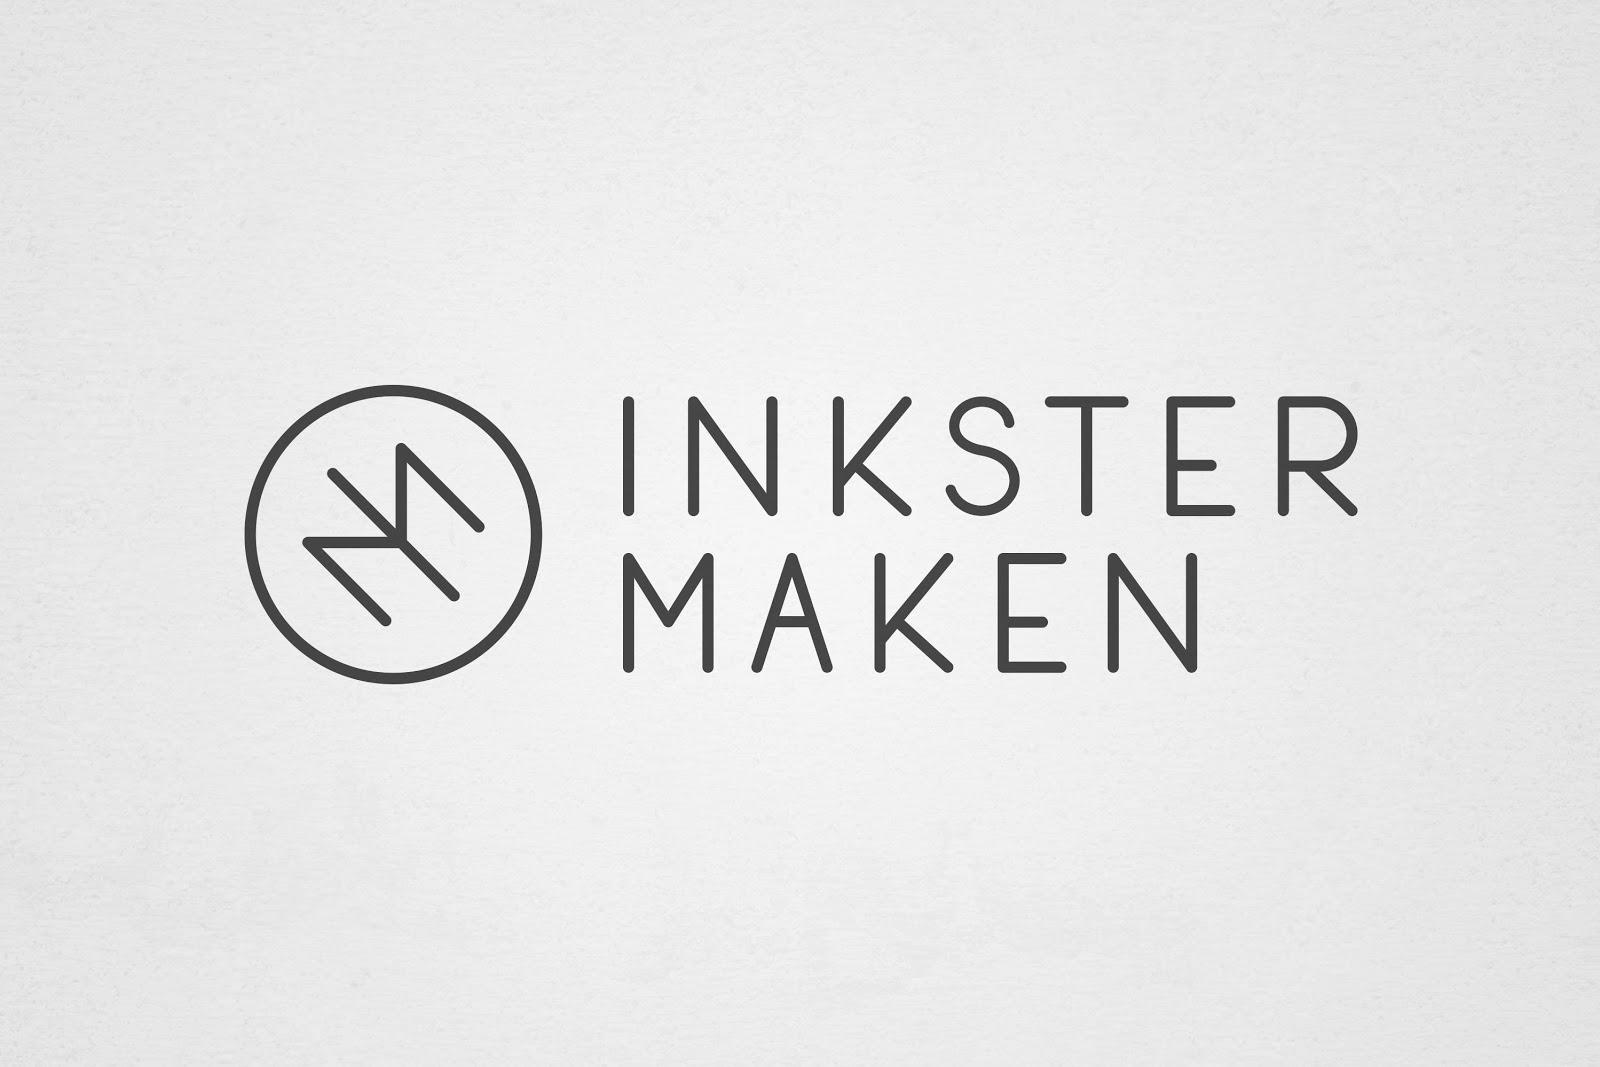 The Hungry Workshop for Inkster Maken